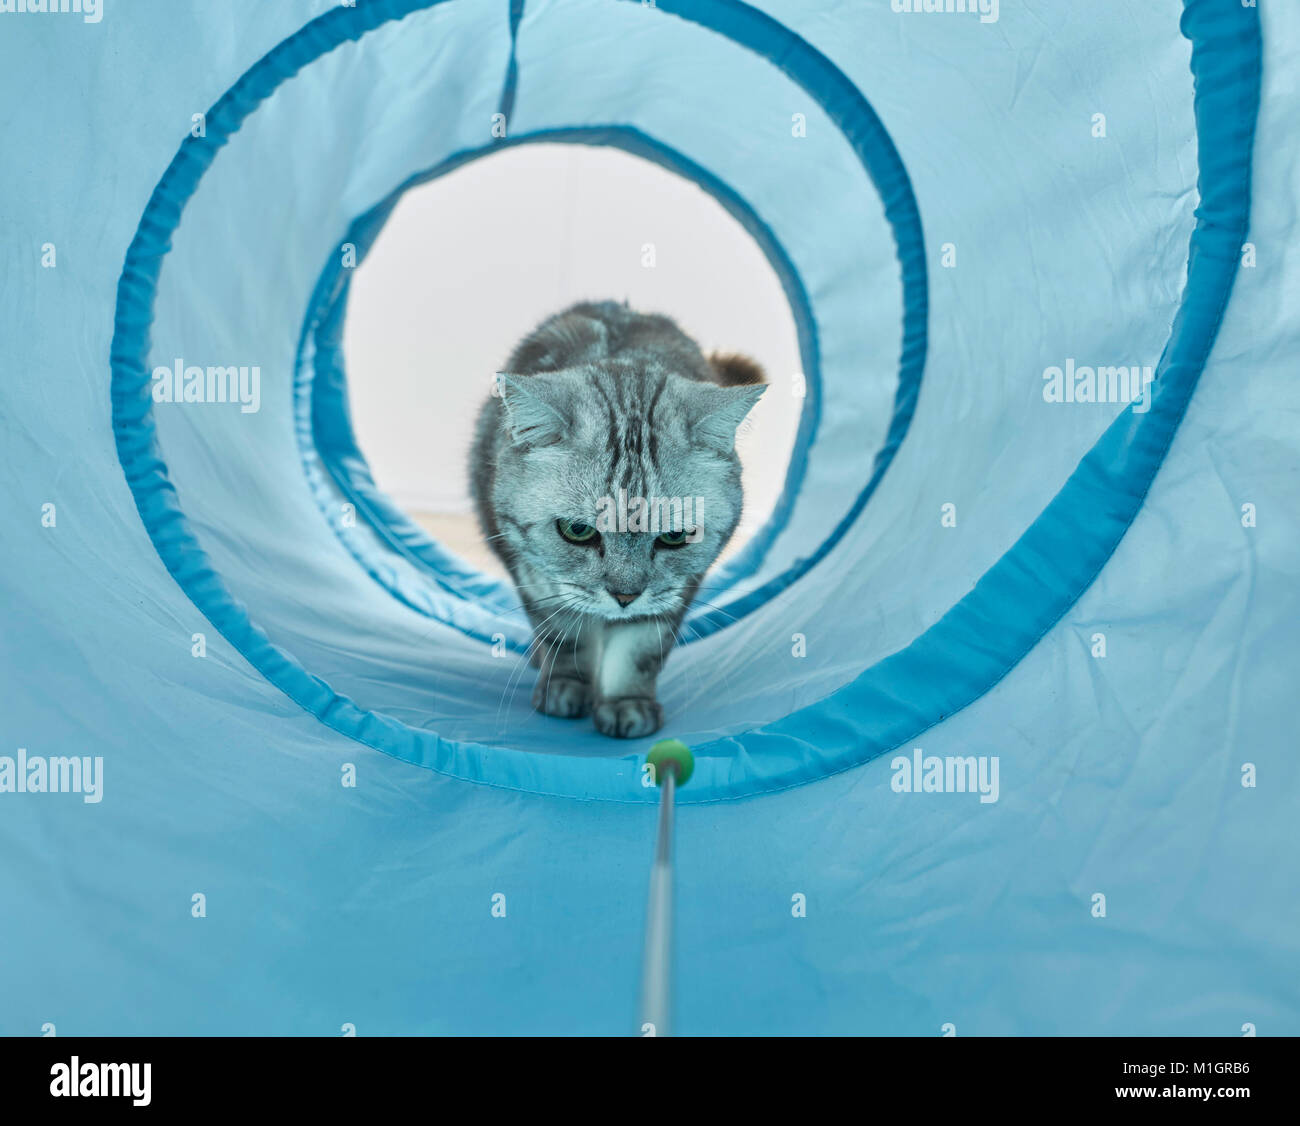 British Shorthair. Gray tabby adult waling through a blue toy tunnel. Germany - Stock Image